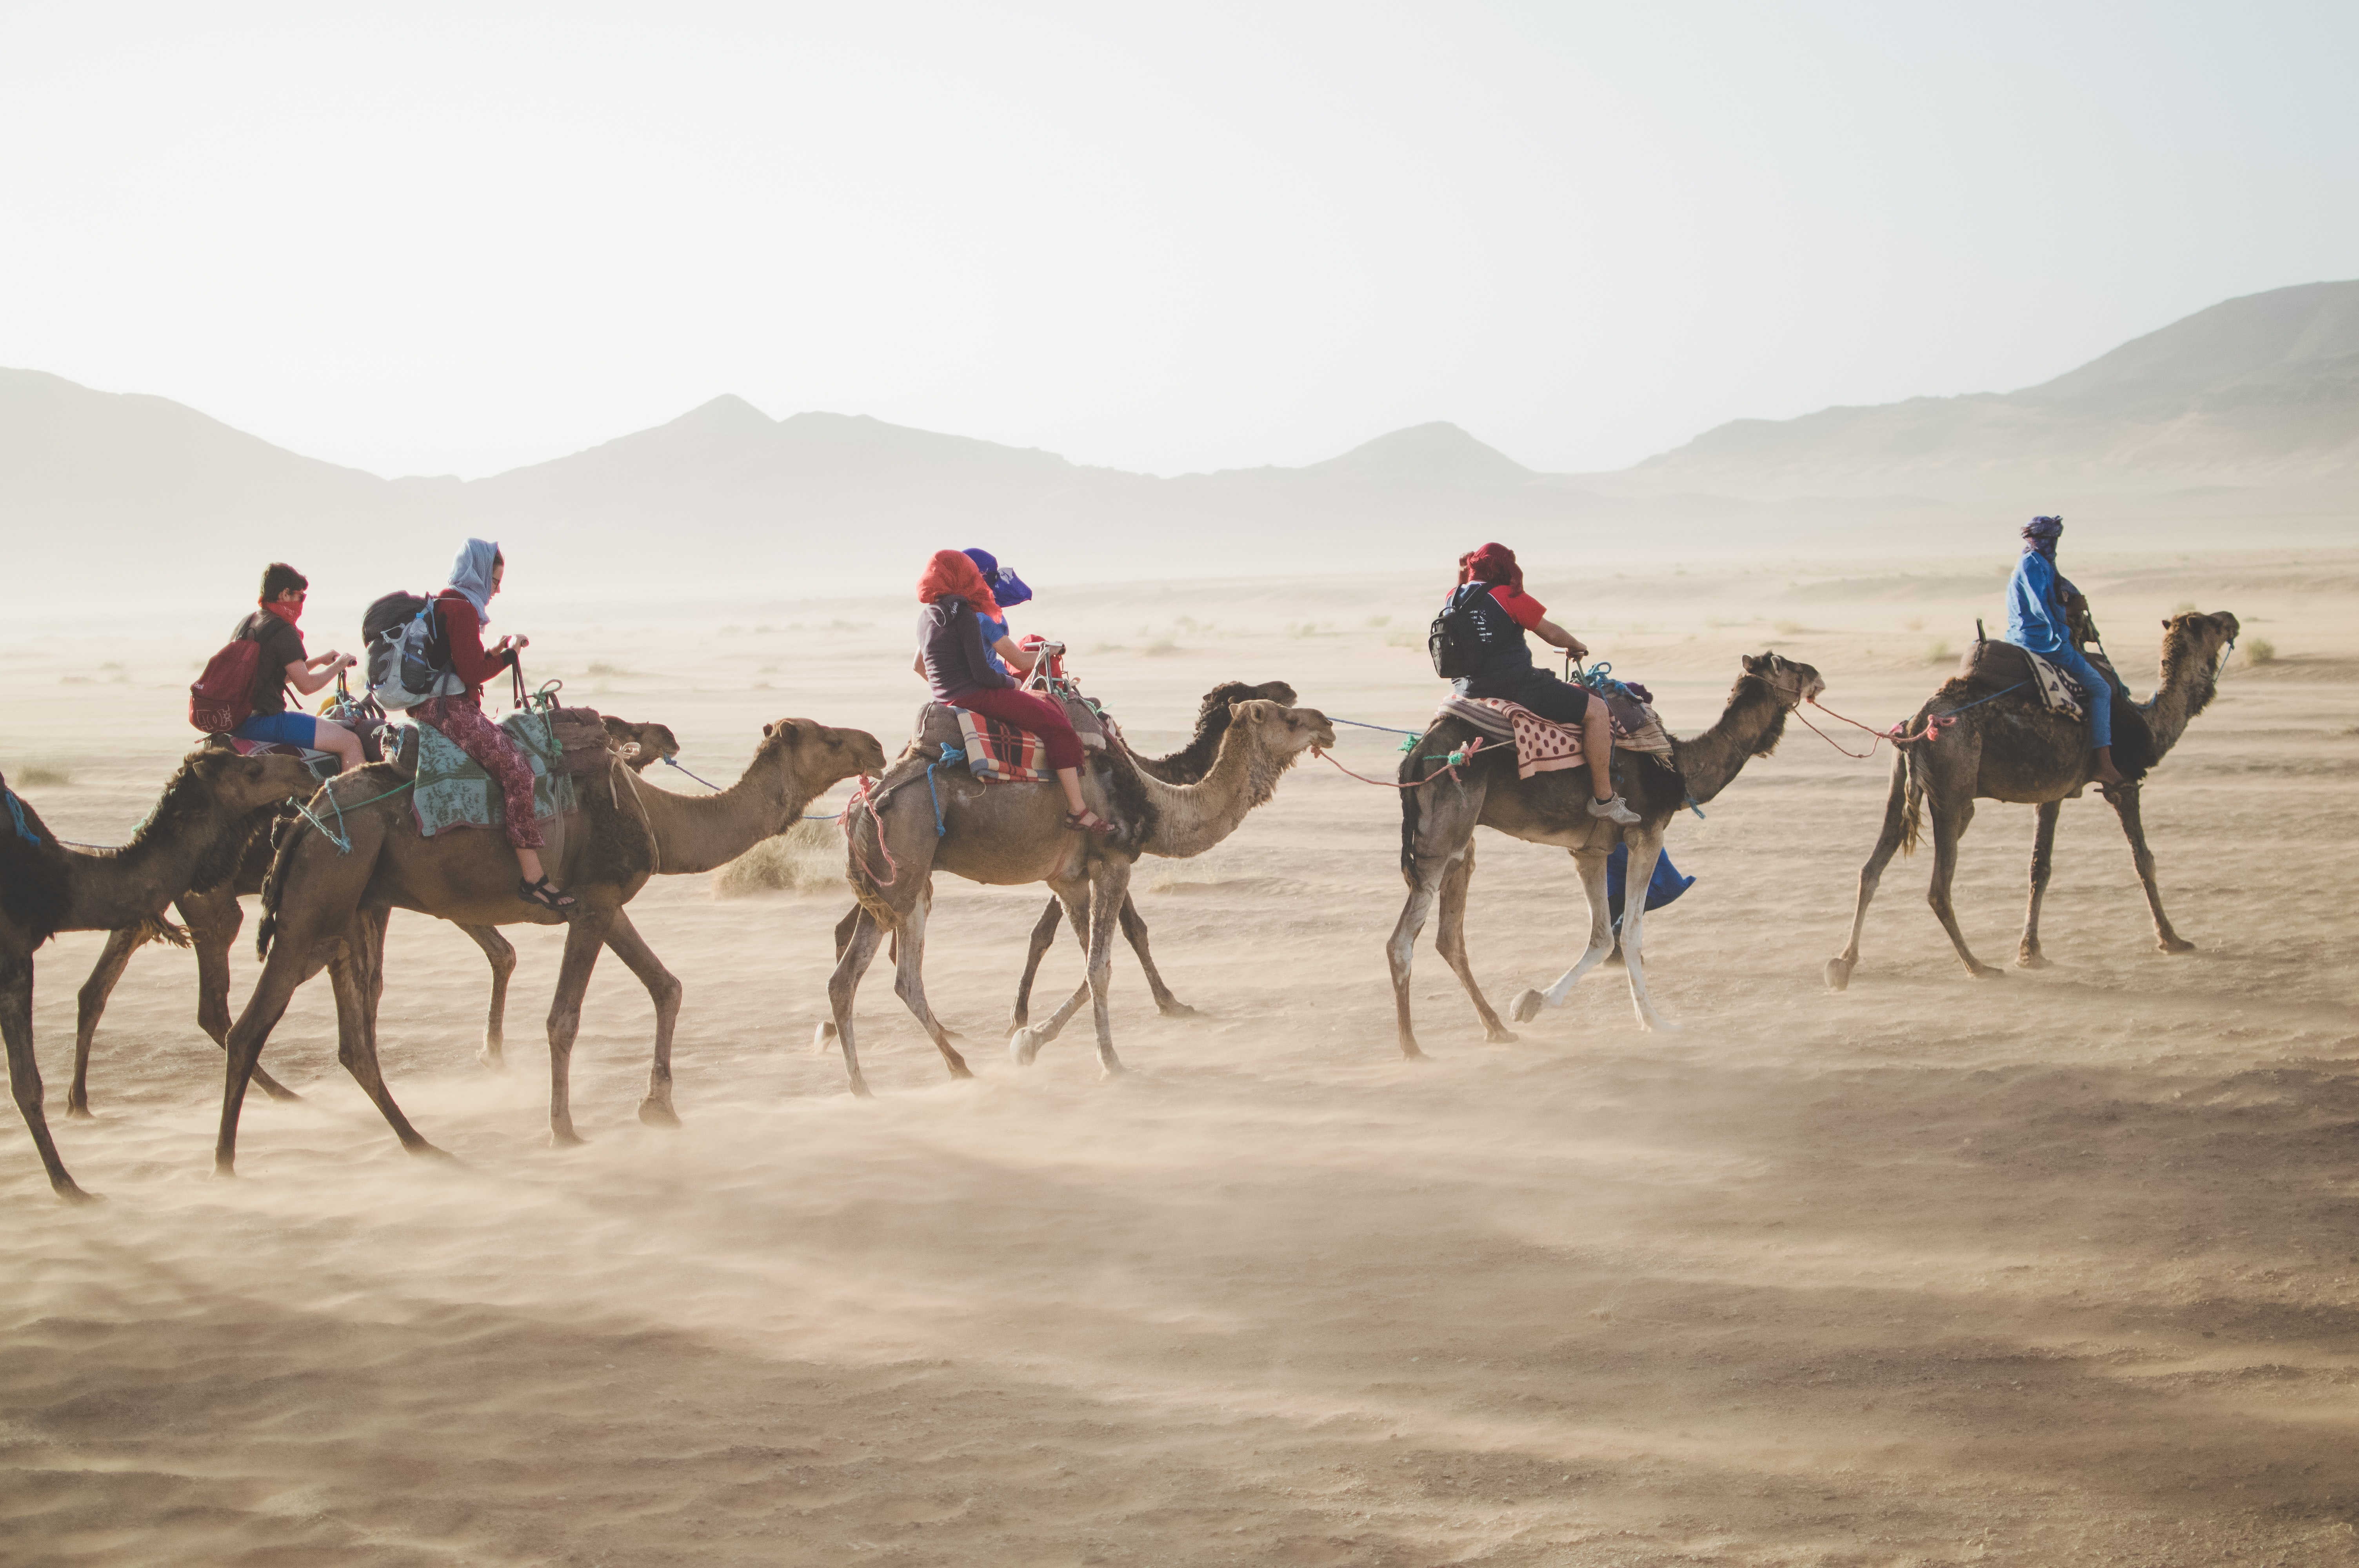 People on Camels in the Sahara